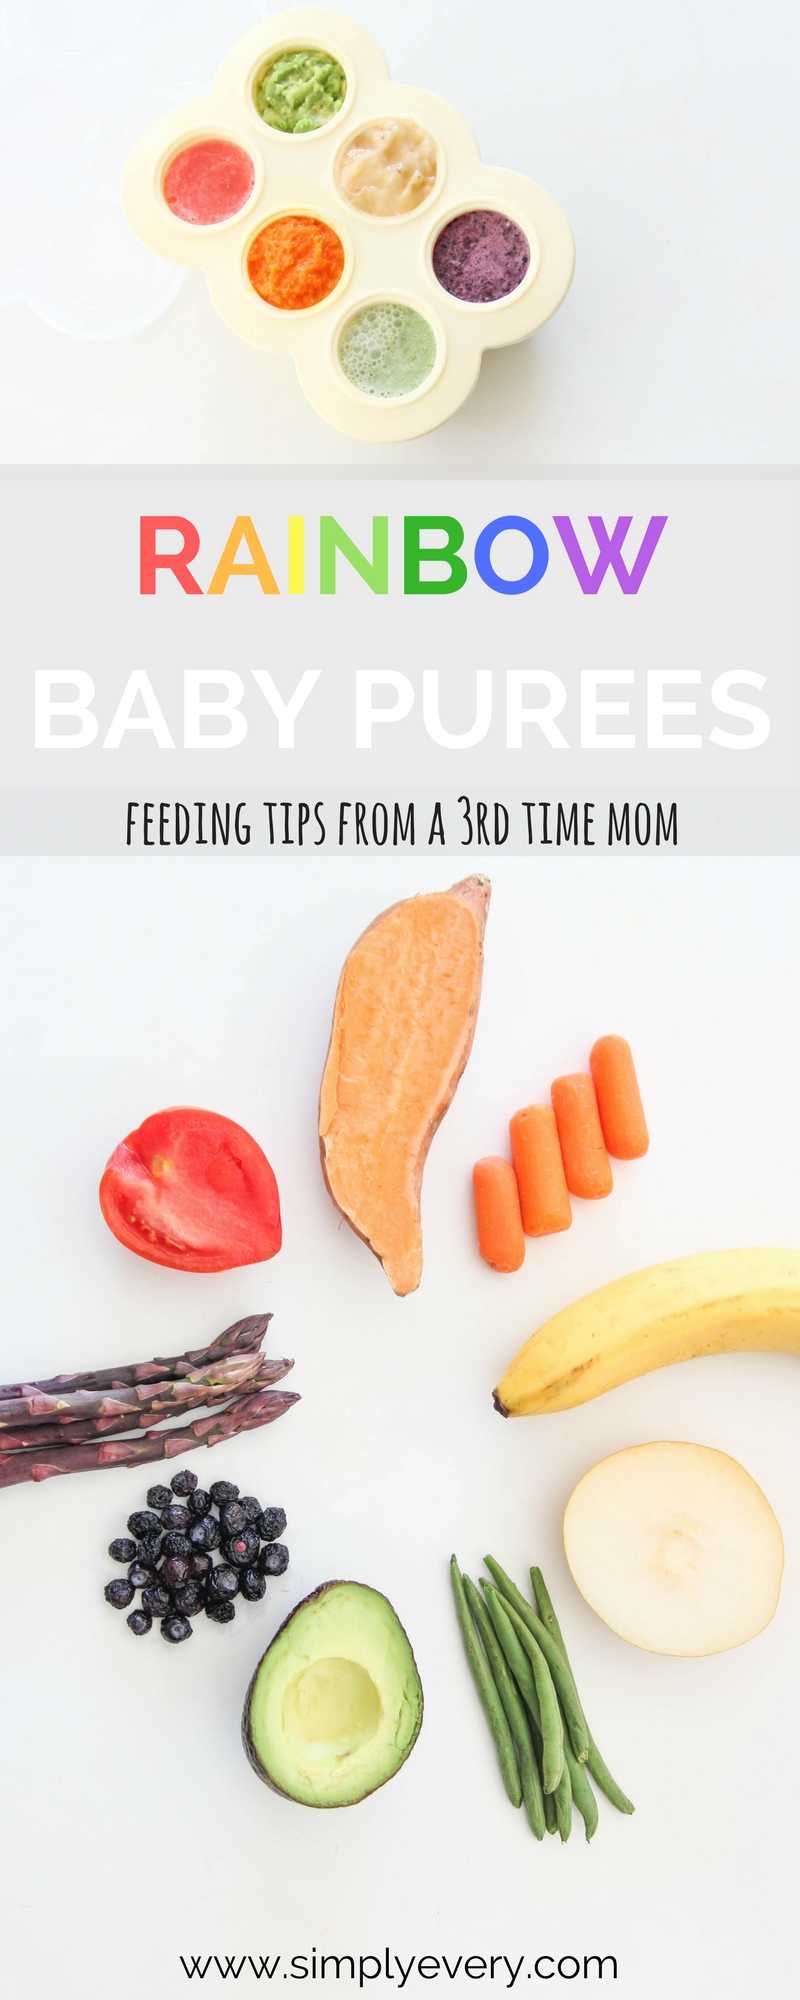 Rainbow Baby Purees & Feeding Tips from A Third Time Mom